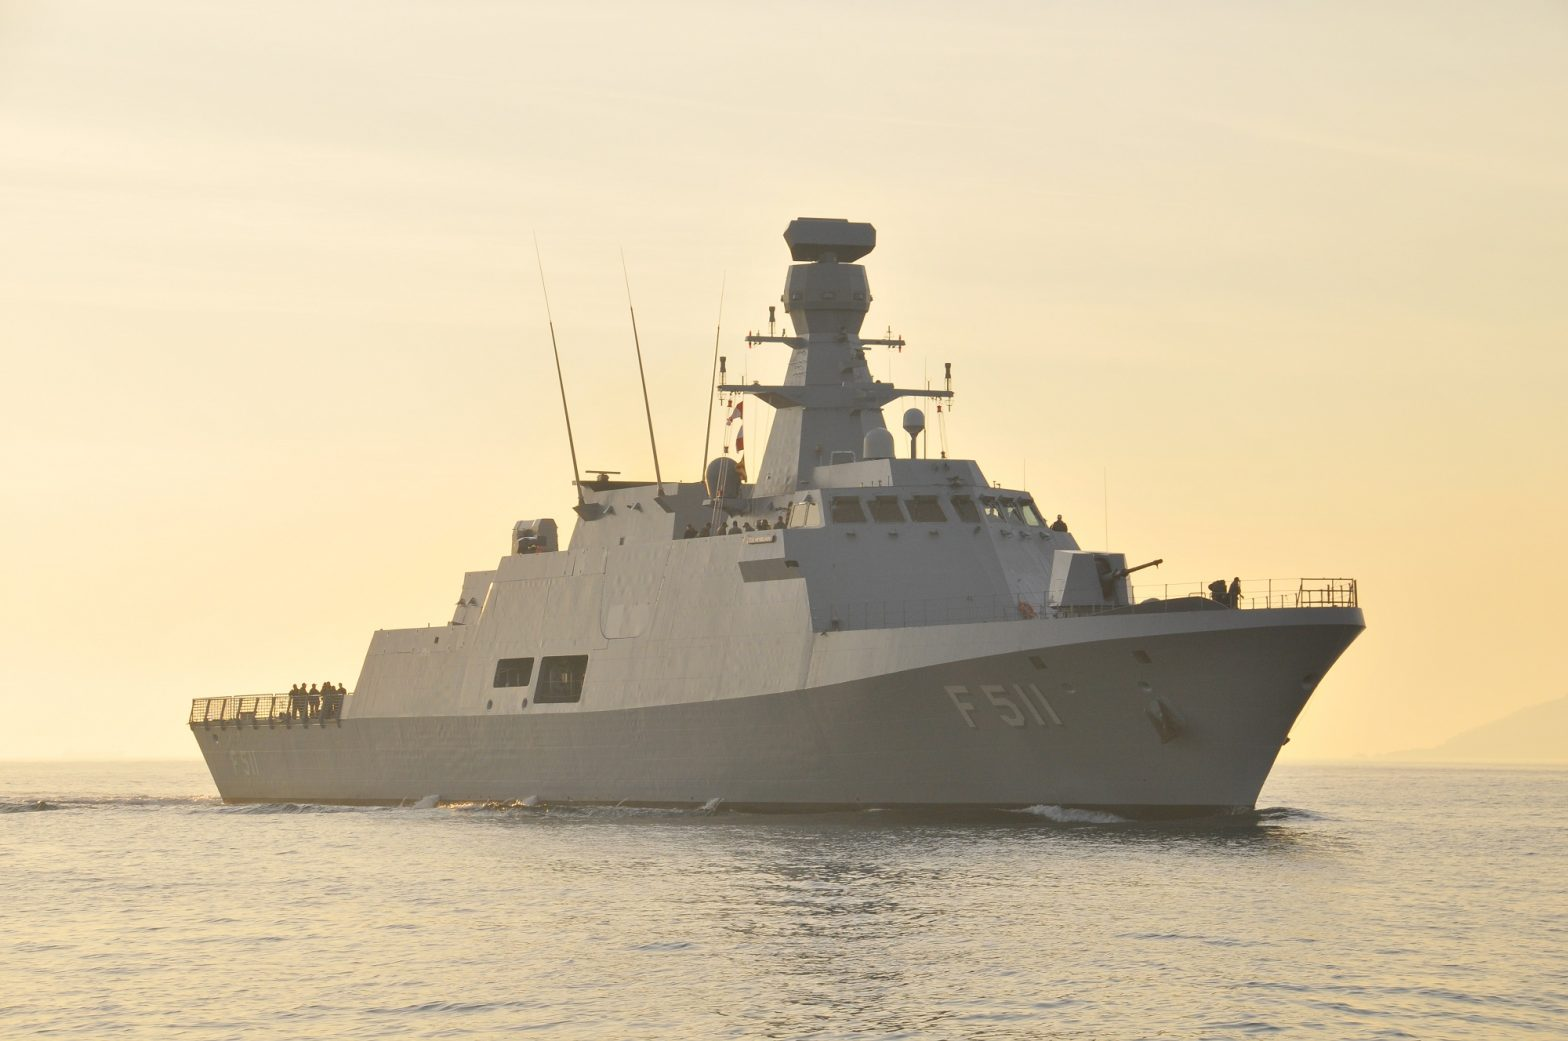 Pakistan is near to get MILGEM Corvette from Turkey